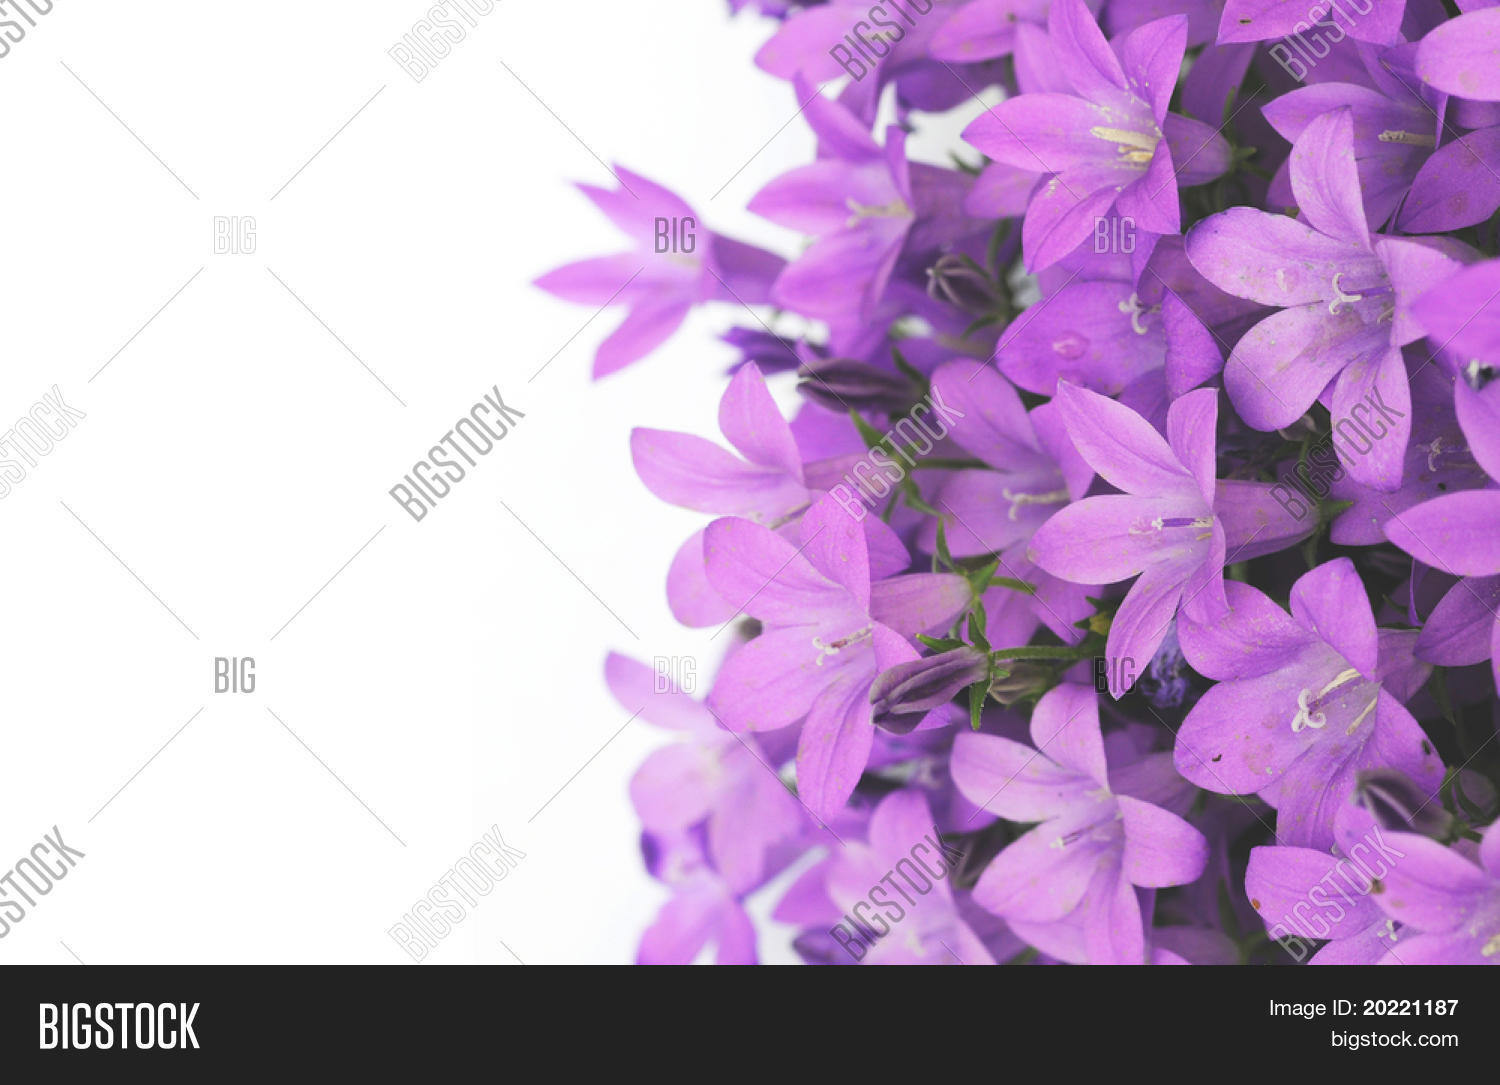 Lovely purple flowers against white image photo bigstock lovely purple flowers against white background mightylinksfo Images